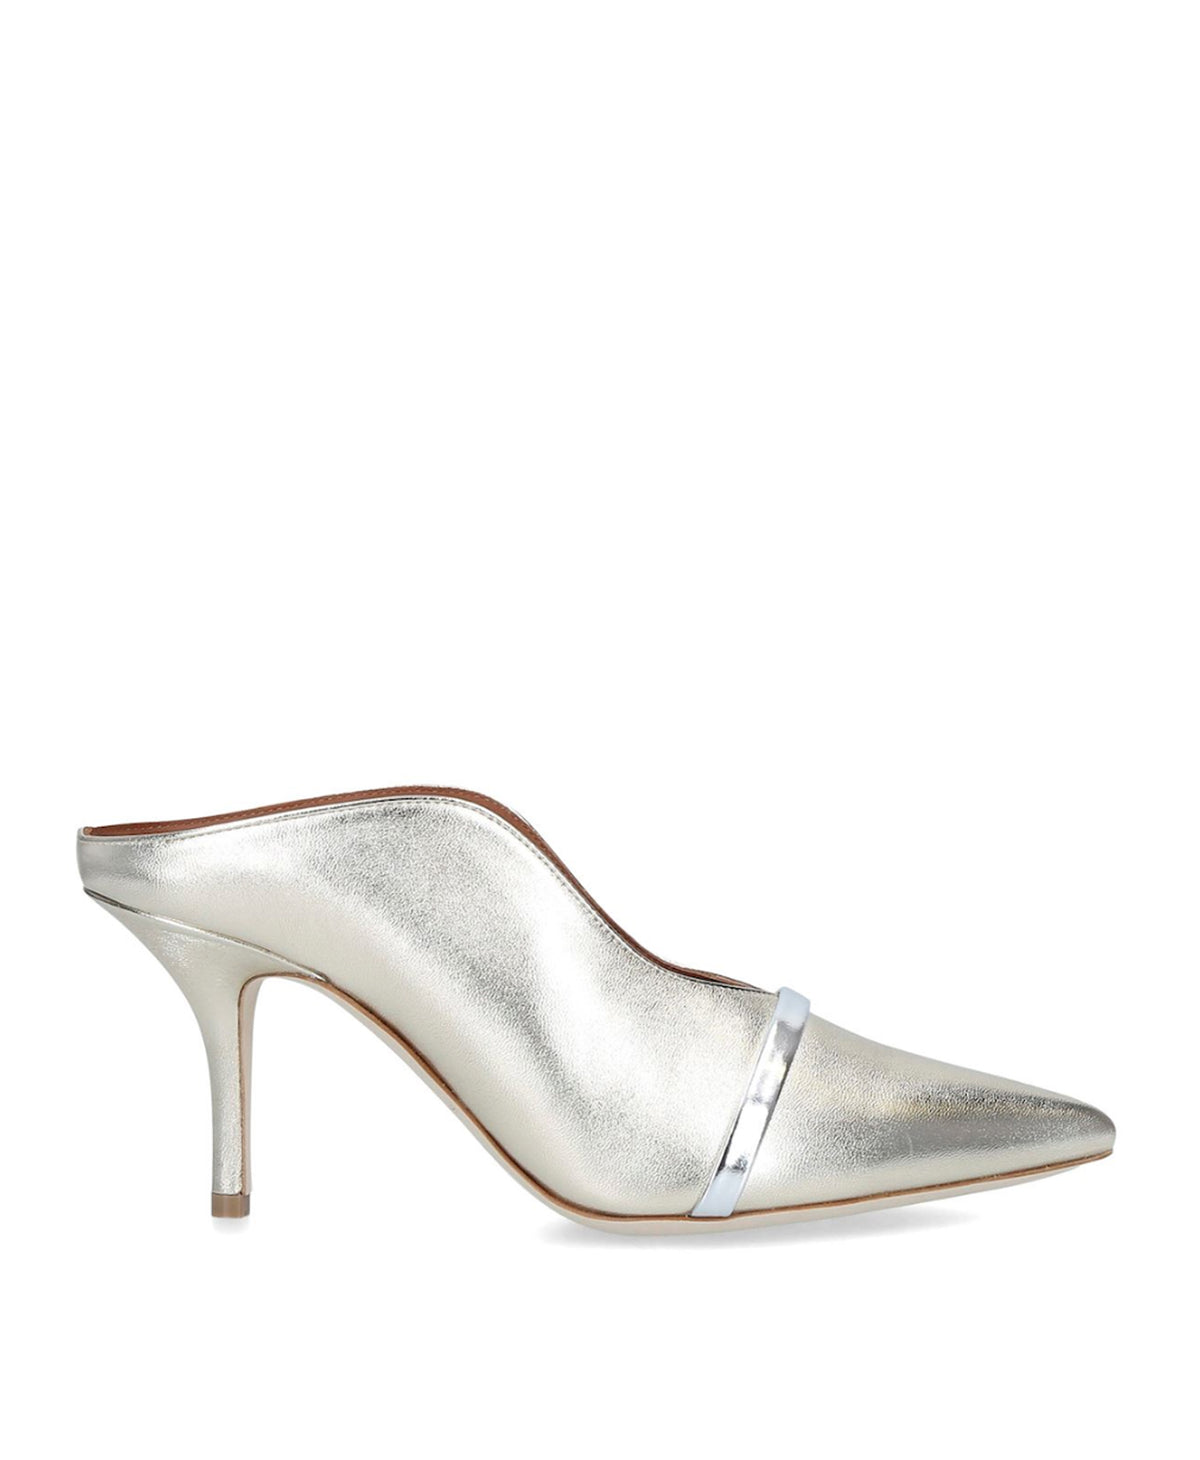 CONSTANCE 70mm - Platino Metallic Silver Mirror Leather